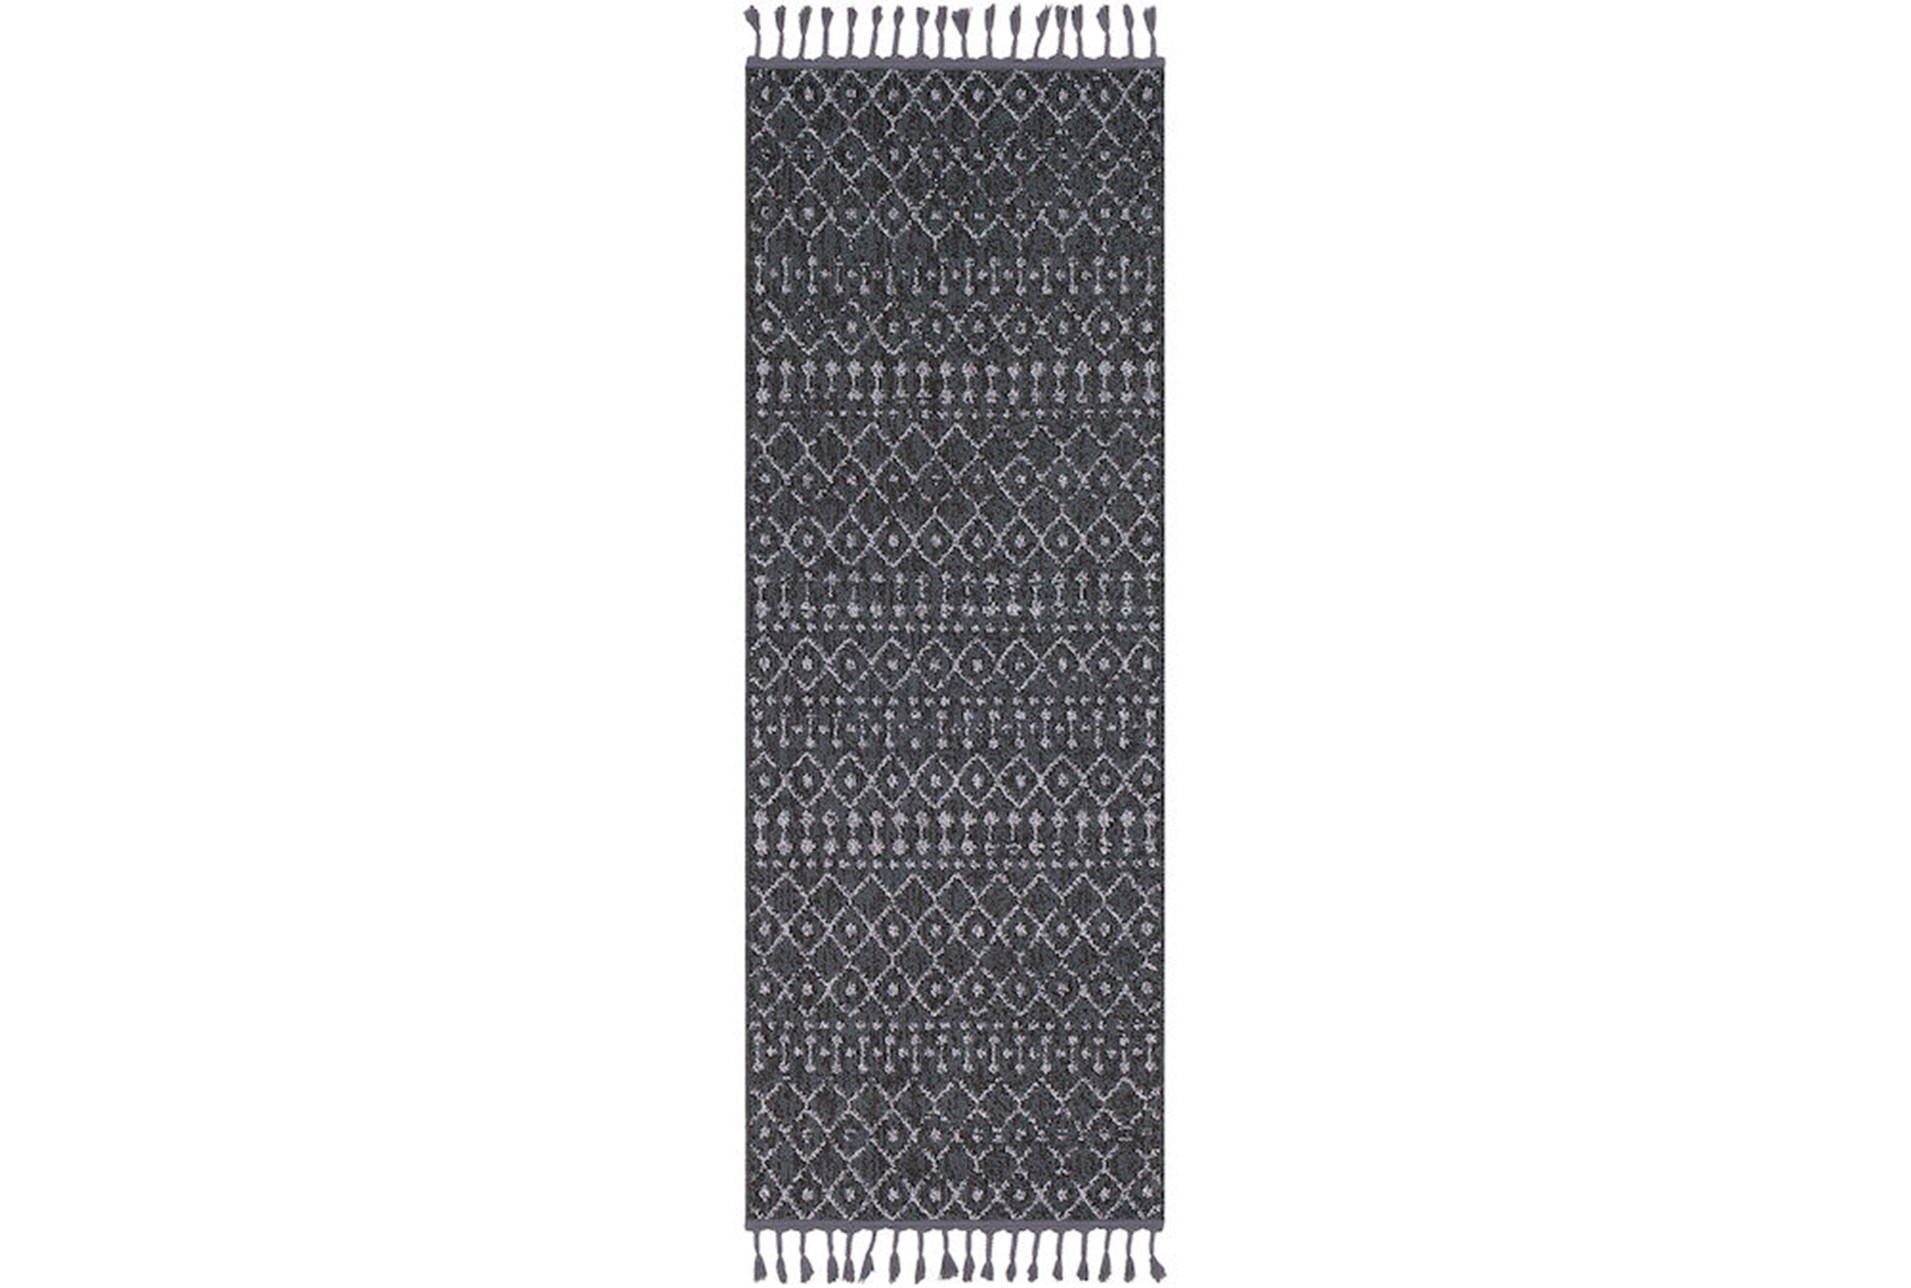 87x31 rug charcoal boho diamonds tassel trim qty 1 has been successfully added to your cart